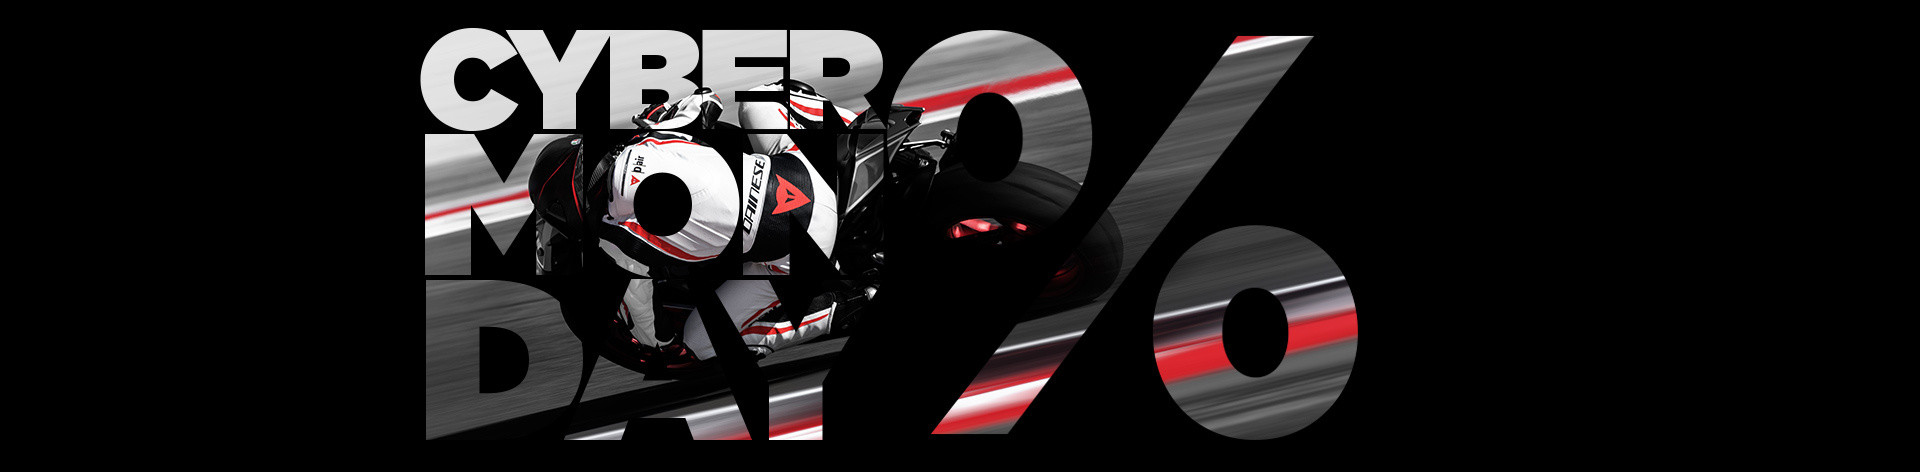 Dainese Motorbike Black Friday